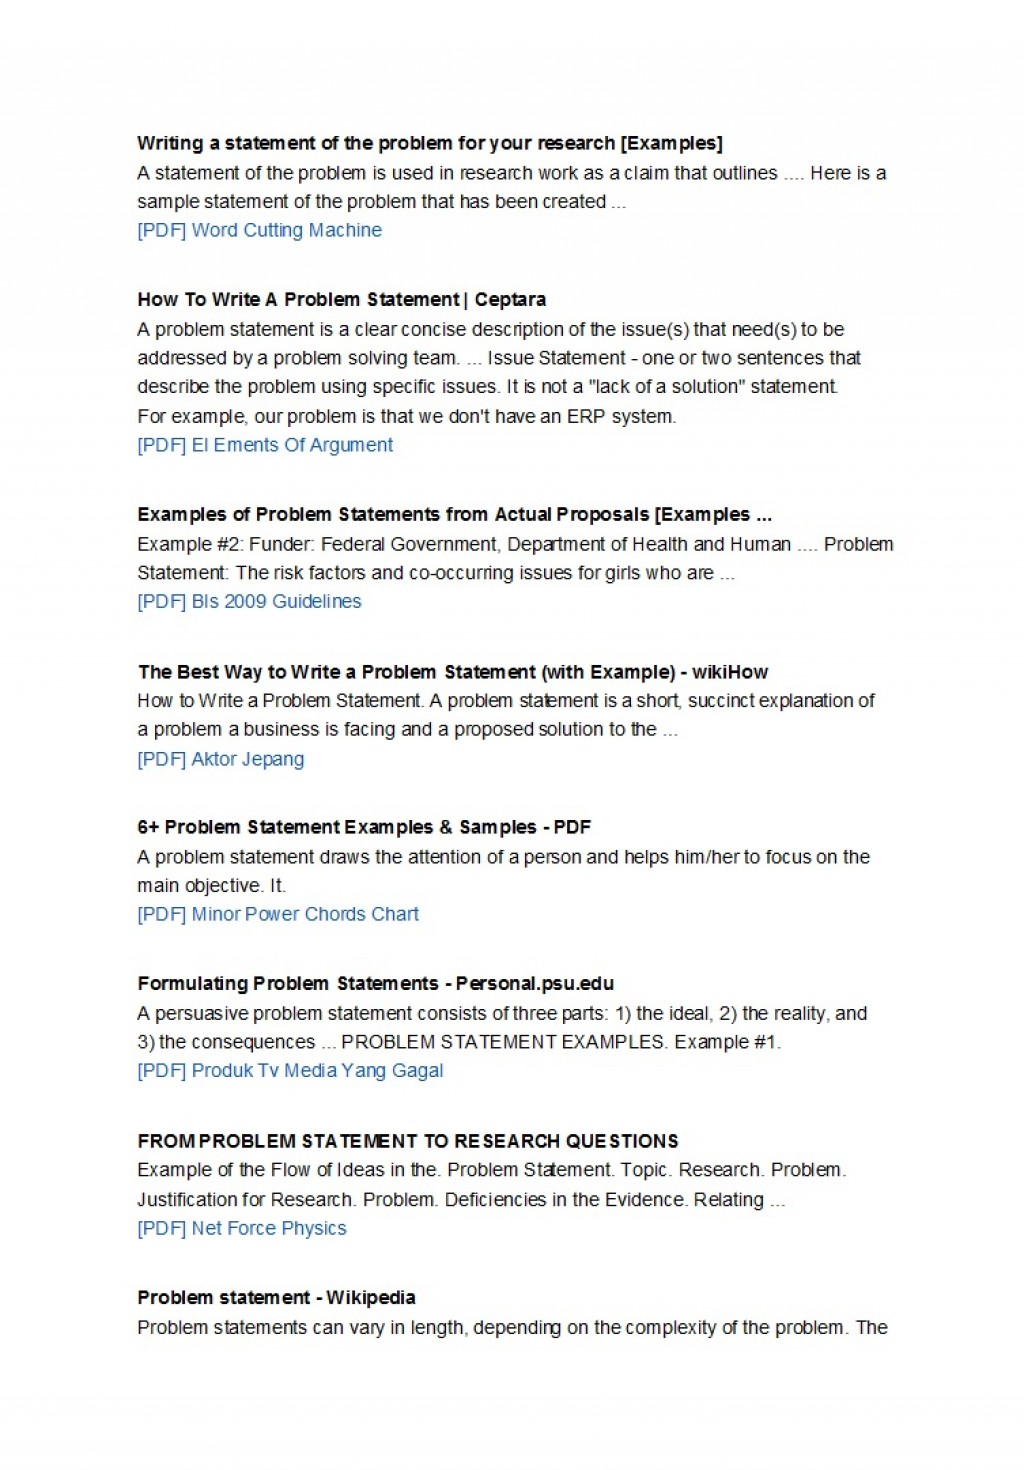 Professional personal statement editor websites for mba